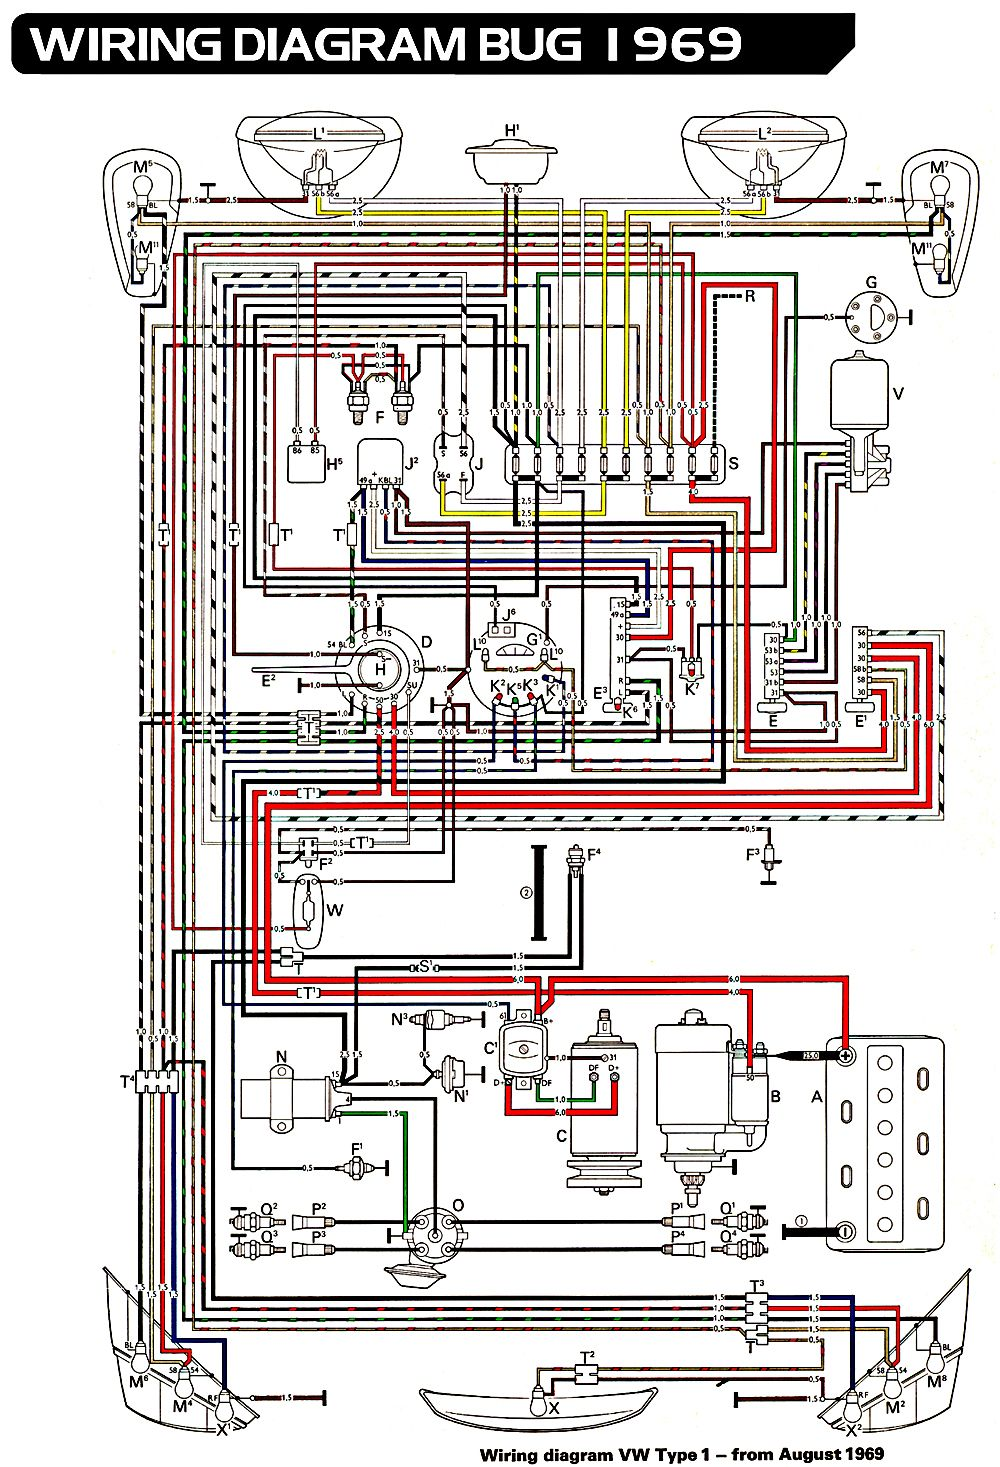 6d75c15875479254f26a32a8499d9044 volkswagen beetle wiring diagram 1966 vw beetle wiring vw wiring diagrams at couponss.co